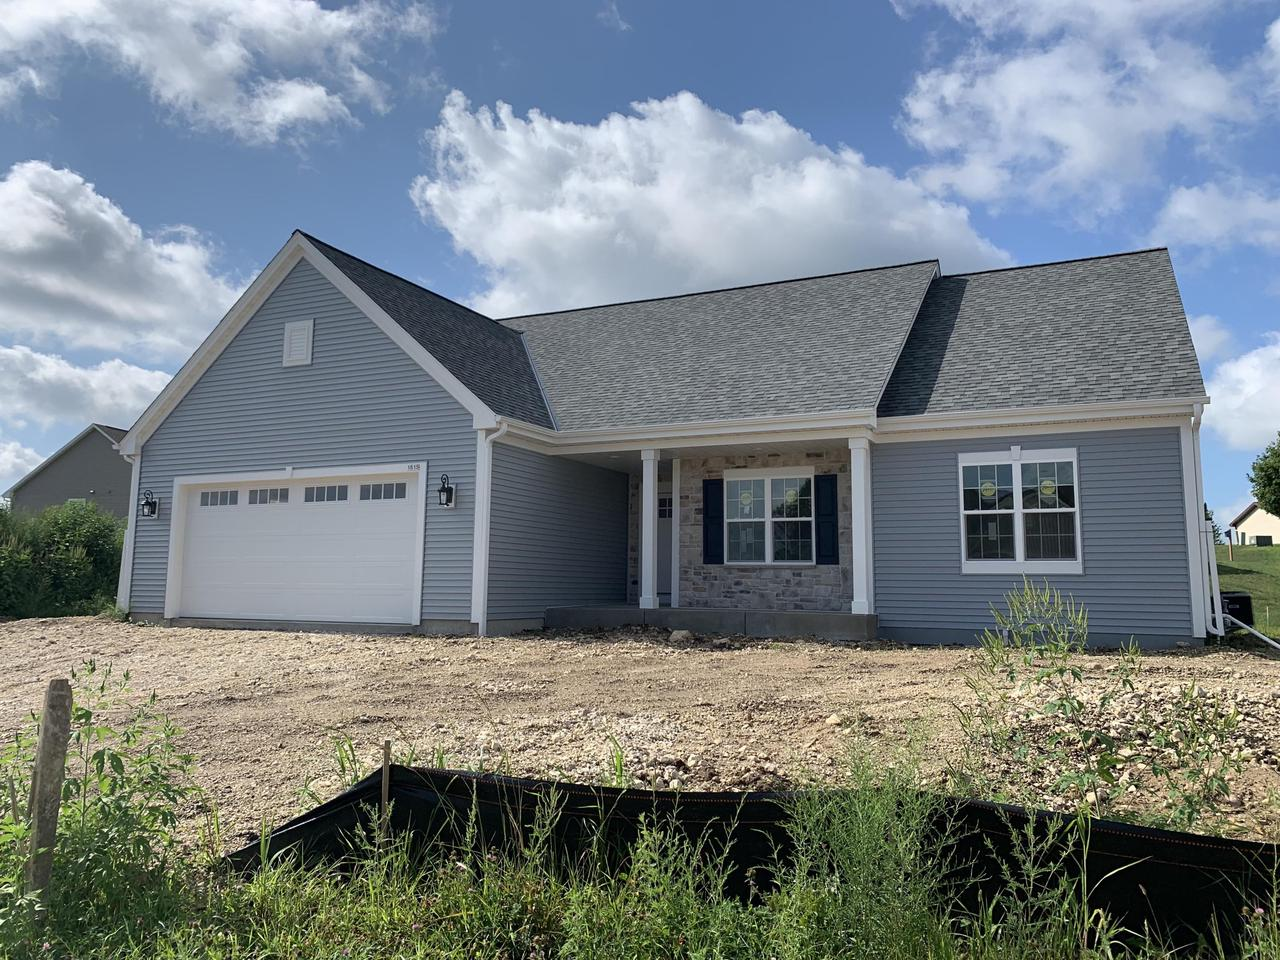 NEW CONSTRUCTION by Stepping Stone Homes. $2500 buyer closing cost credit OR credit towards a patio/deck for an accepted offer by 10/31! The Emery Model in Autumn Ridge  will welcome you w/it's open concept. Superior quality w/2x6 exterior framing,  amazing upgrades like soft close dovetail cabinetry, quartz/marble counter tops, double sinks in bathrooms, upgraded flooring, 8 foot garage doors and more! This home comes equipped with Smart Home Technology, including integrated lighting, door locks, ecobee smart thermostat, video doorbell, Lift Master garage door, all of which you can control from your mobile device! Look inside your refrigerator while you're at the grocery store! Make sure your garage door is closed and the lights are off when you're away. Concrete driveway and seeded lawn!